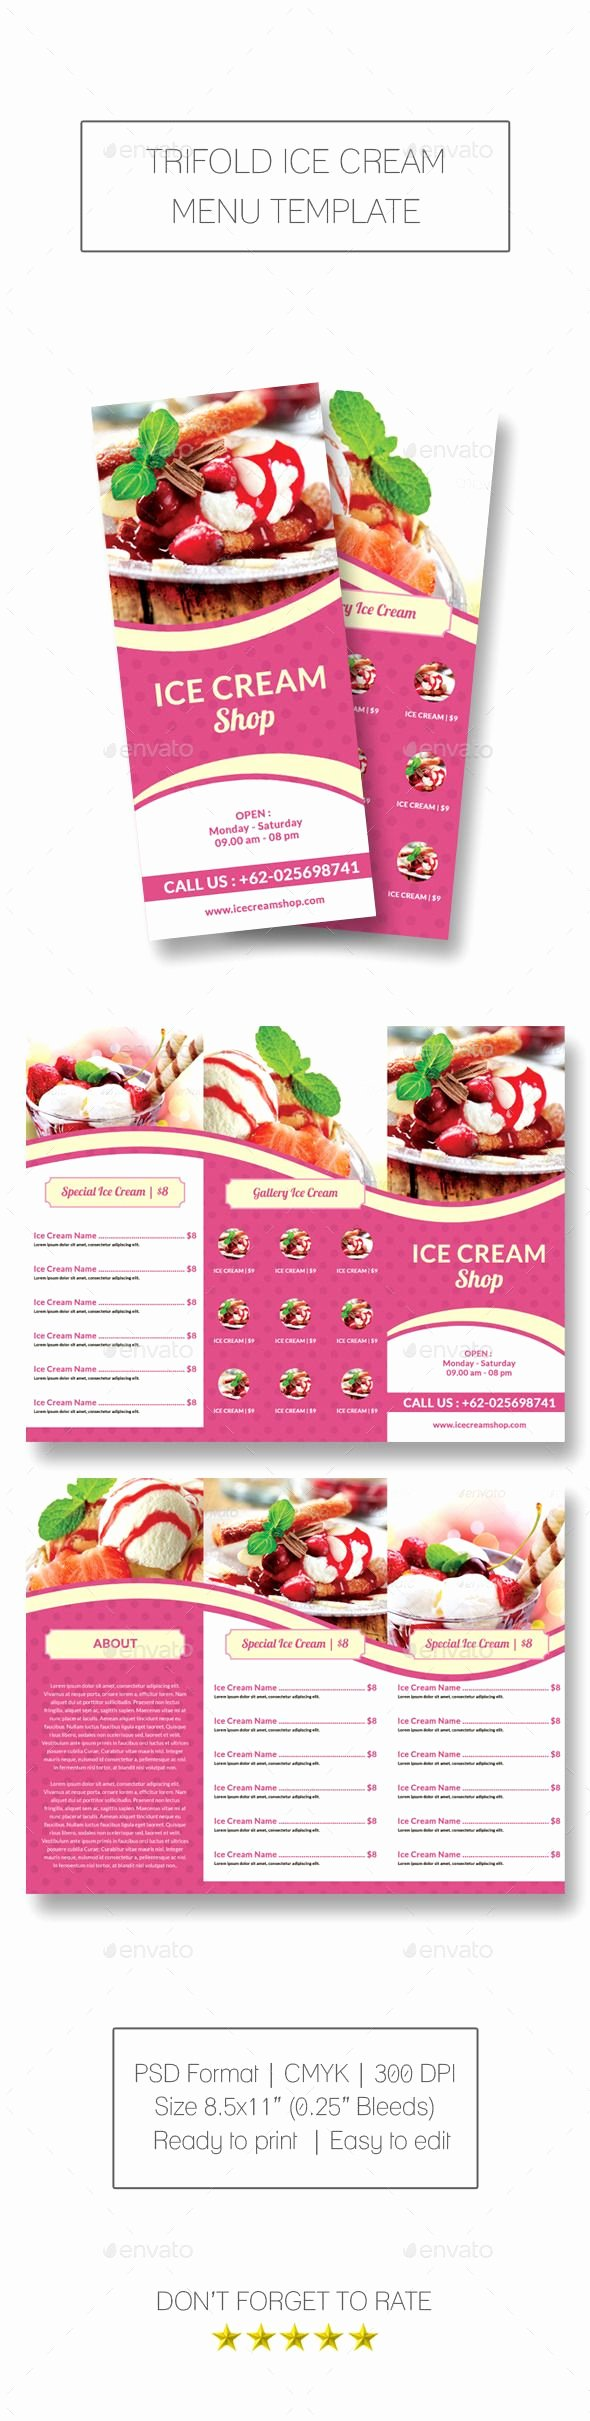 Ice Cream Menu Template Awesome Trifold Ice Cream Menu Template